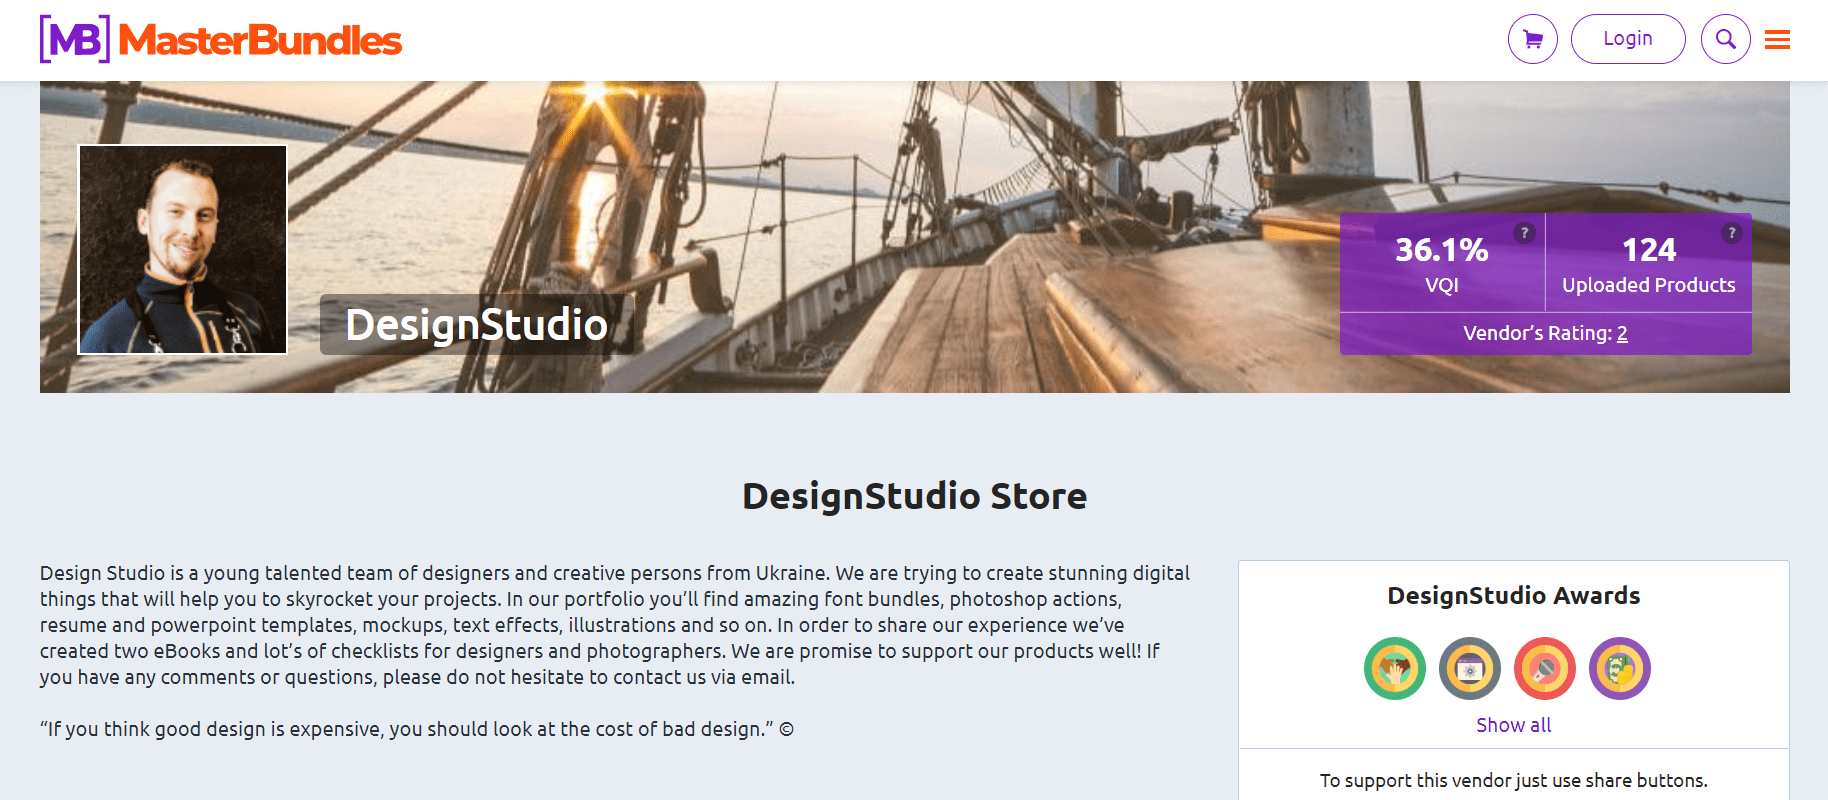 DesignStudio Vendor.